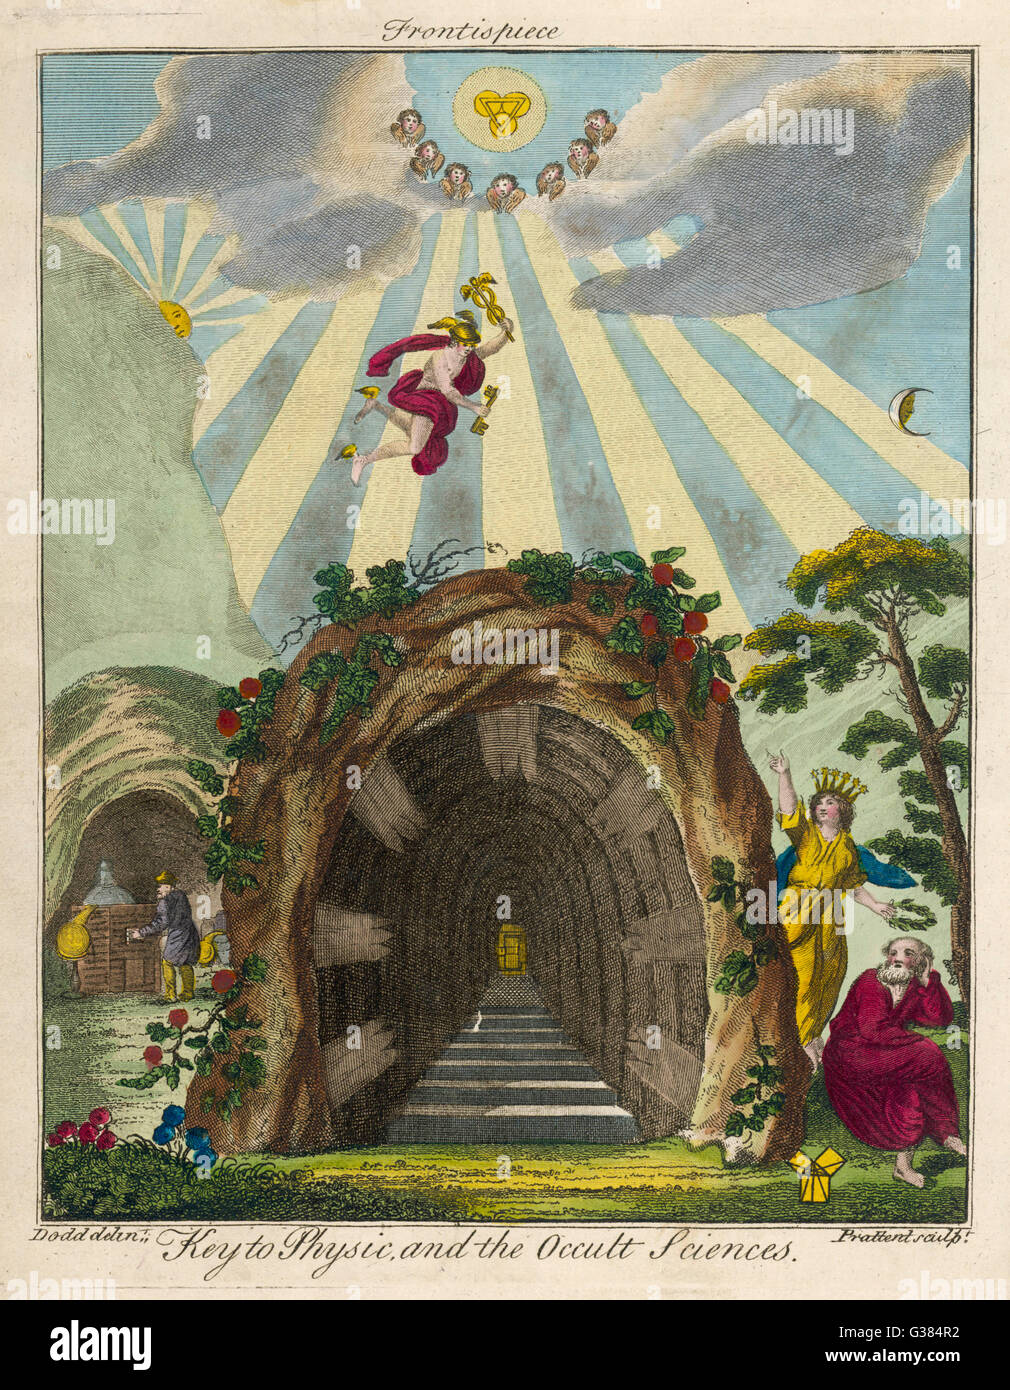 Symbolic frontispiece to Sibly's book        Date: 1794 - Stock Image